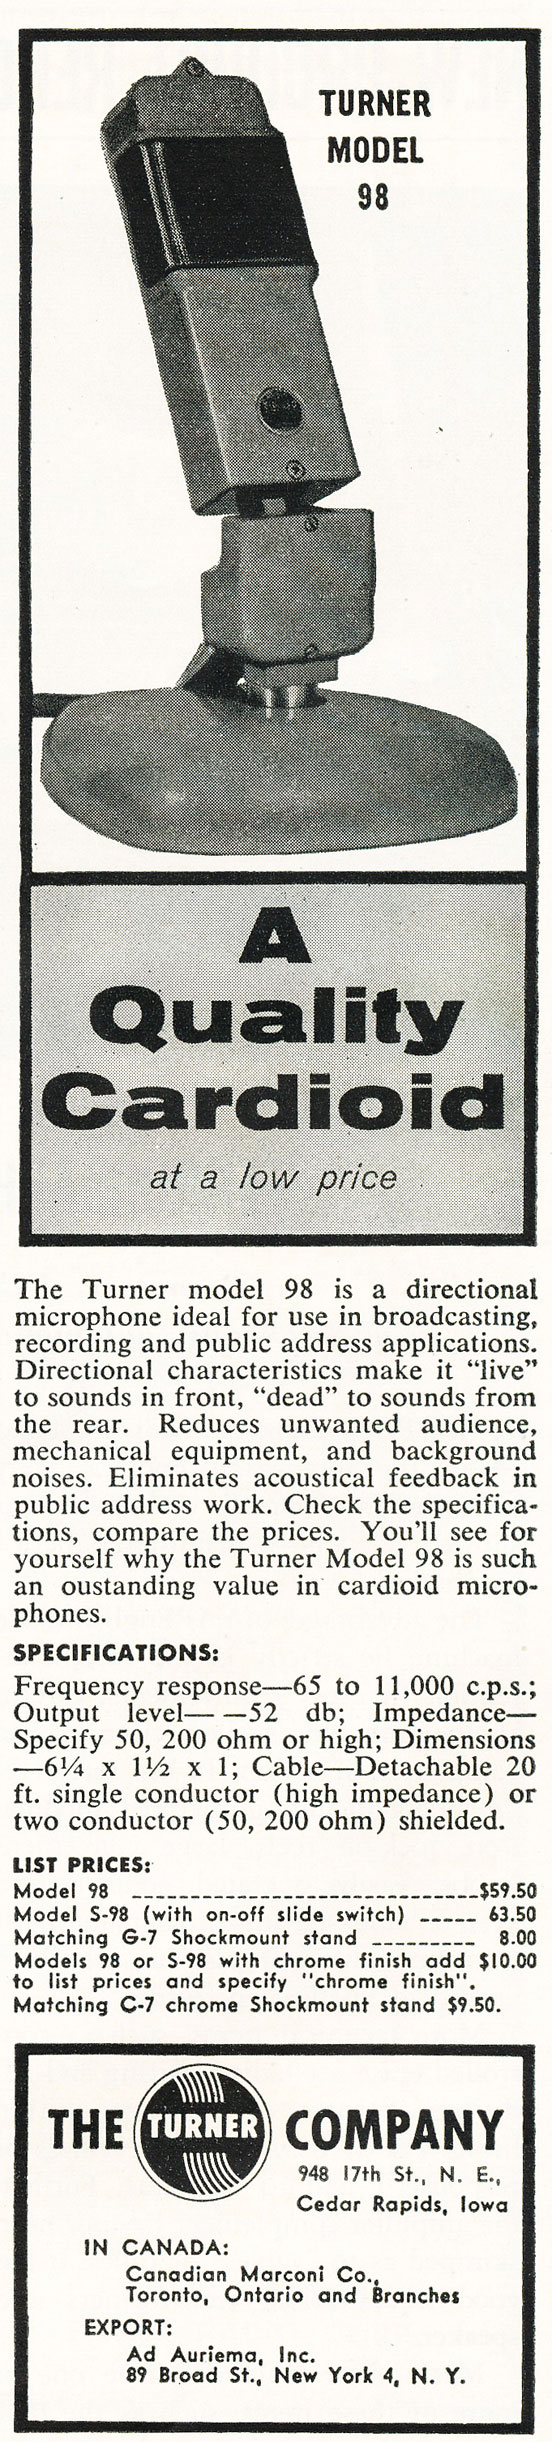 1957 ad for the Turner 98 microphone in Phantom productions' vintage recording collection